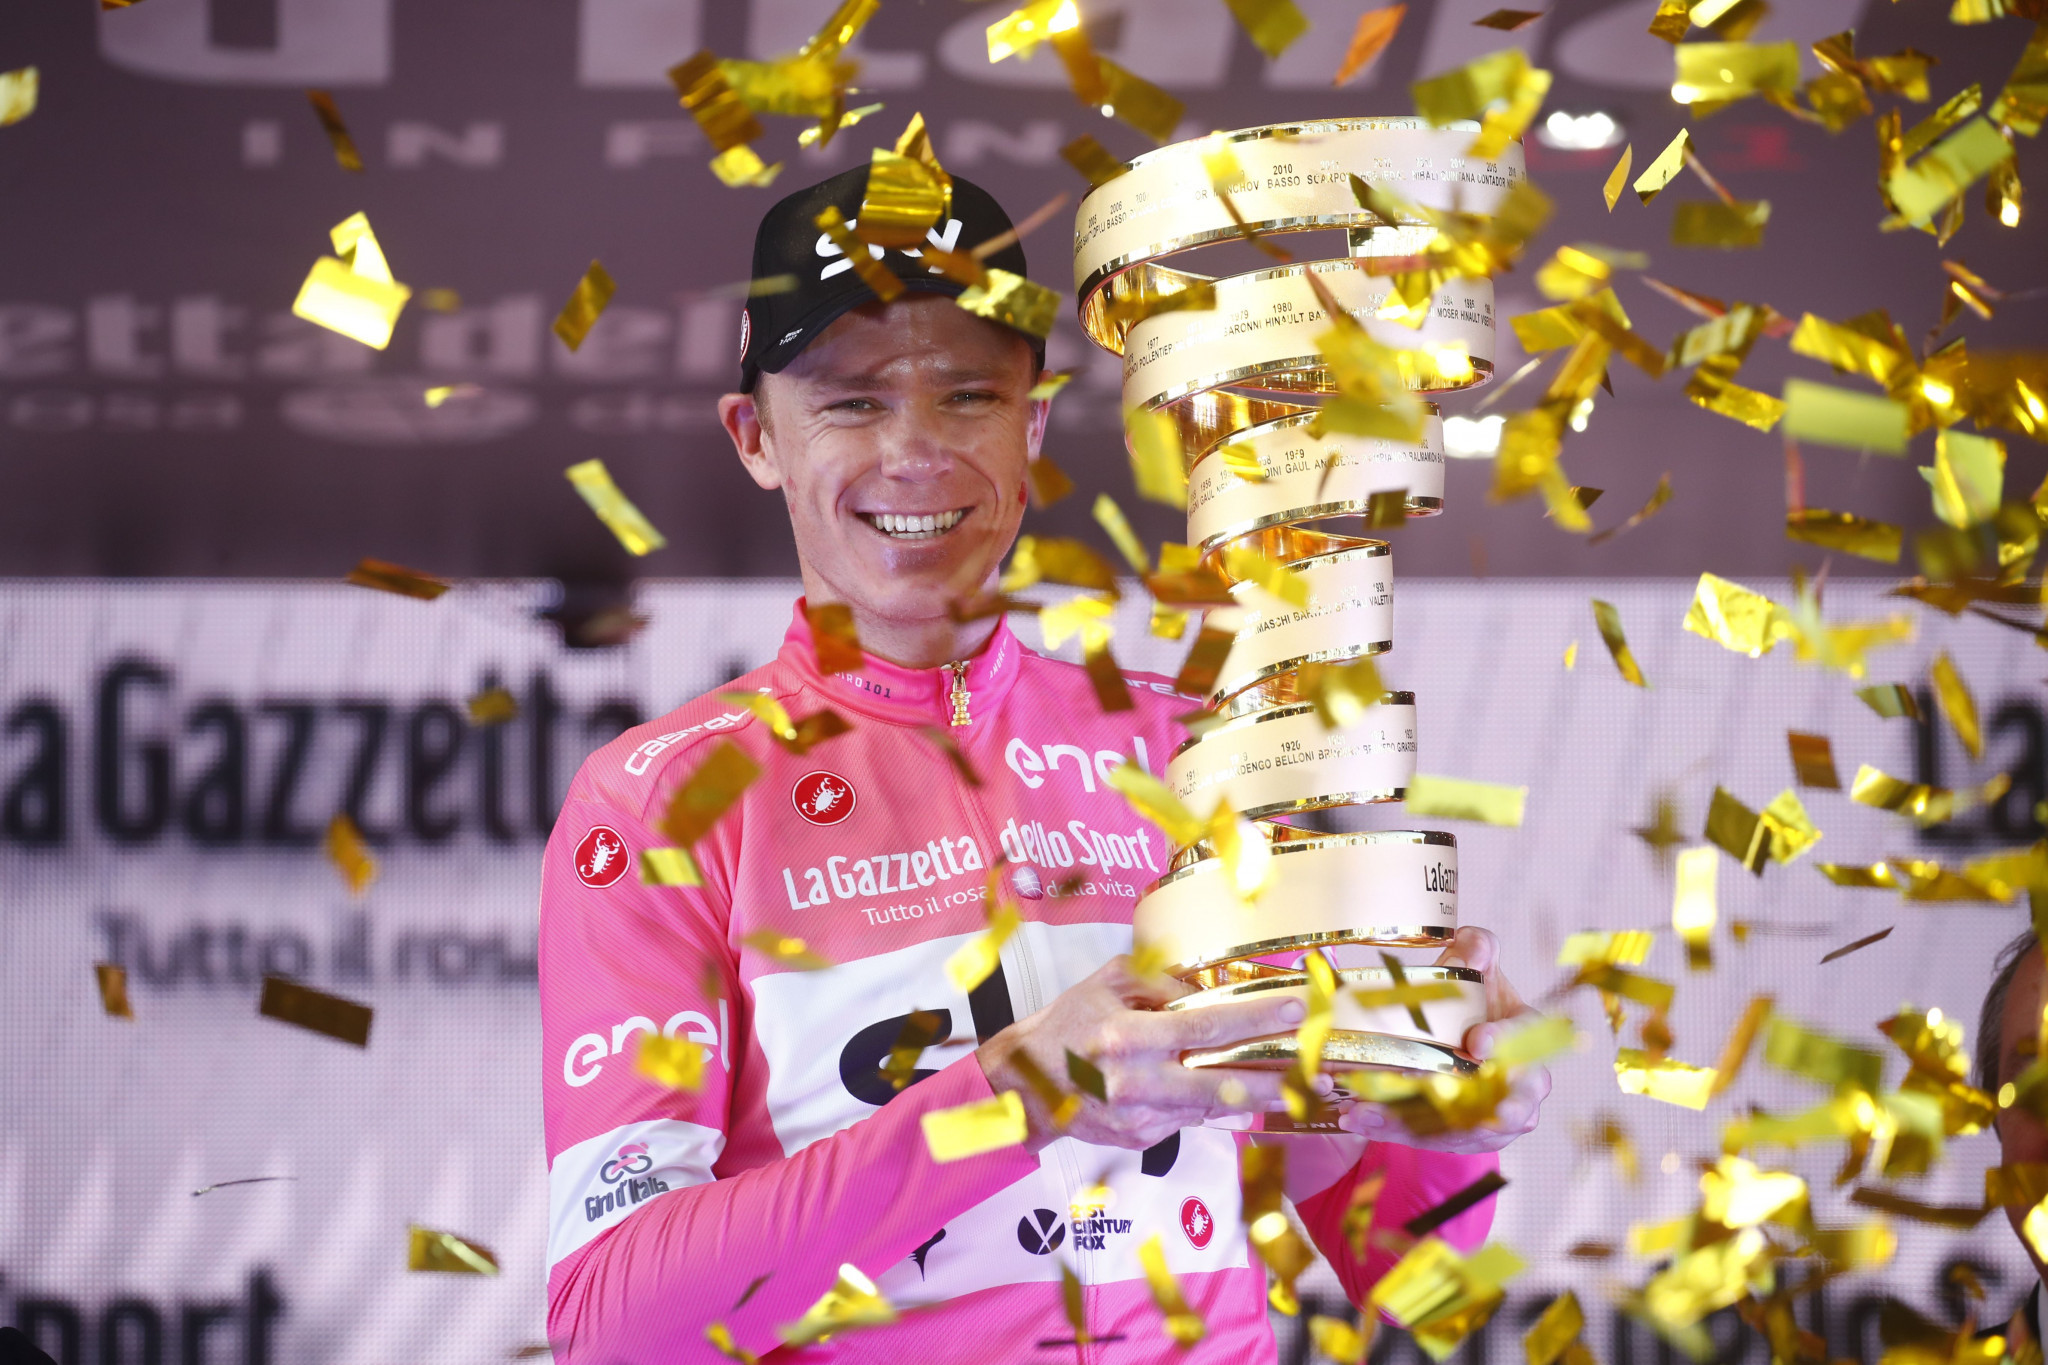 Chris Froome has dismissed criticism of the validity of his Giro d'Italia win ©Getty Images